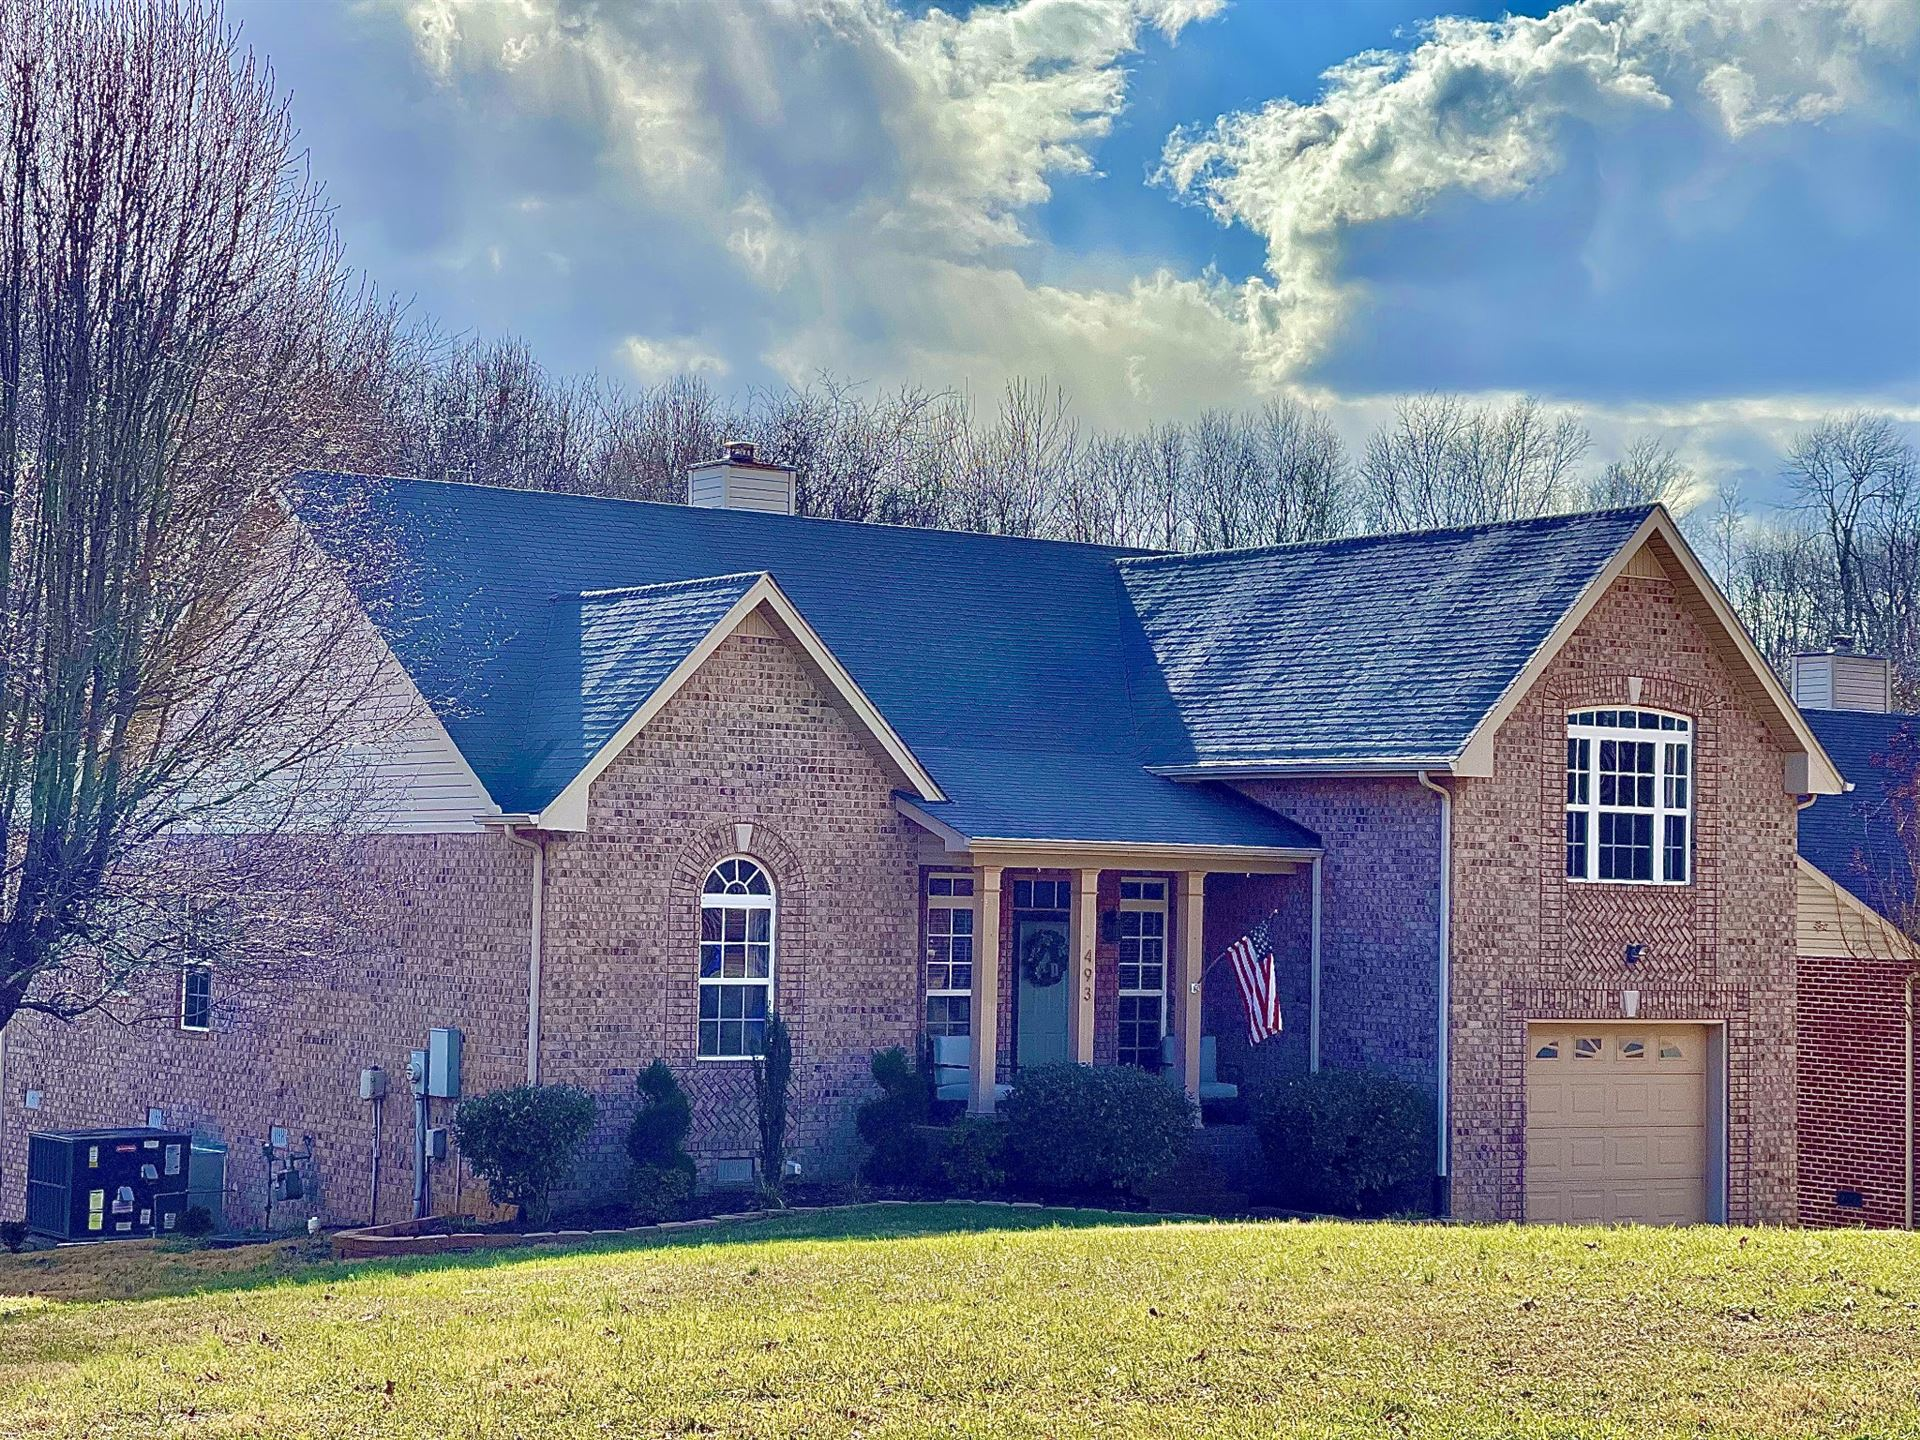 493 Calista Rd, White House, TN 37188 - MLS#: 2221048